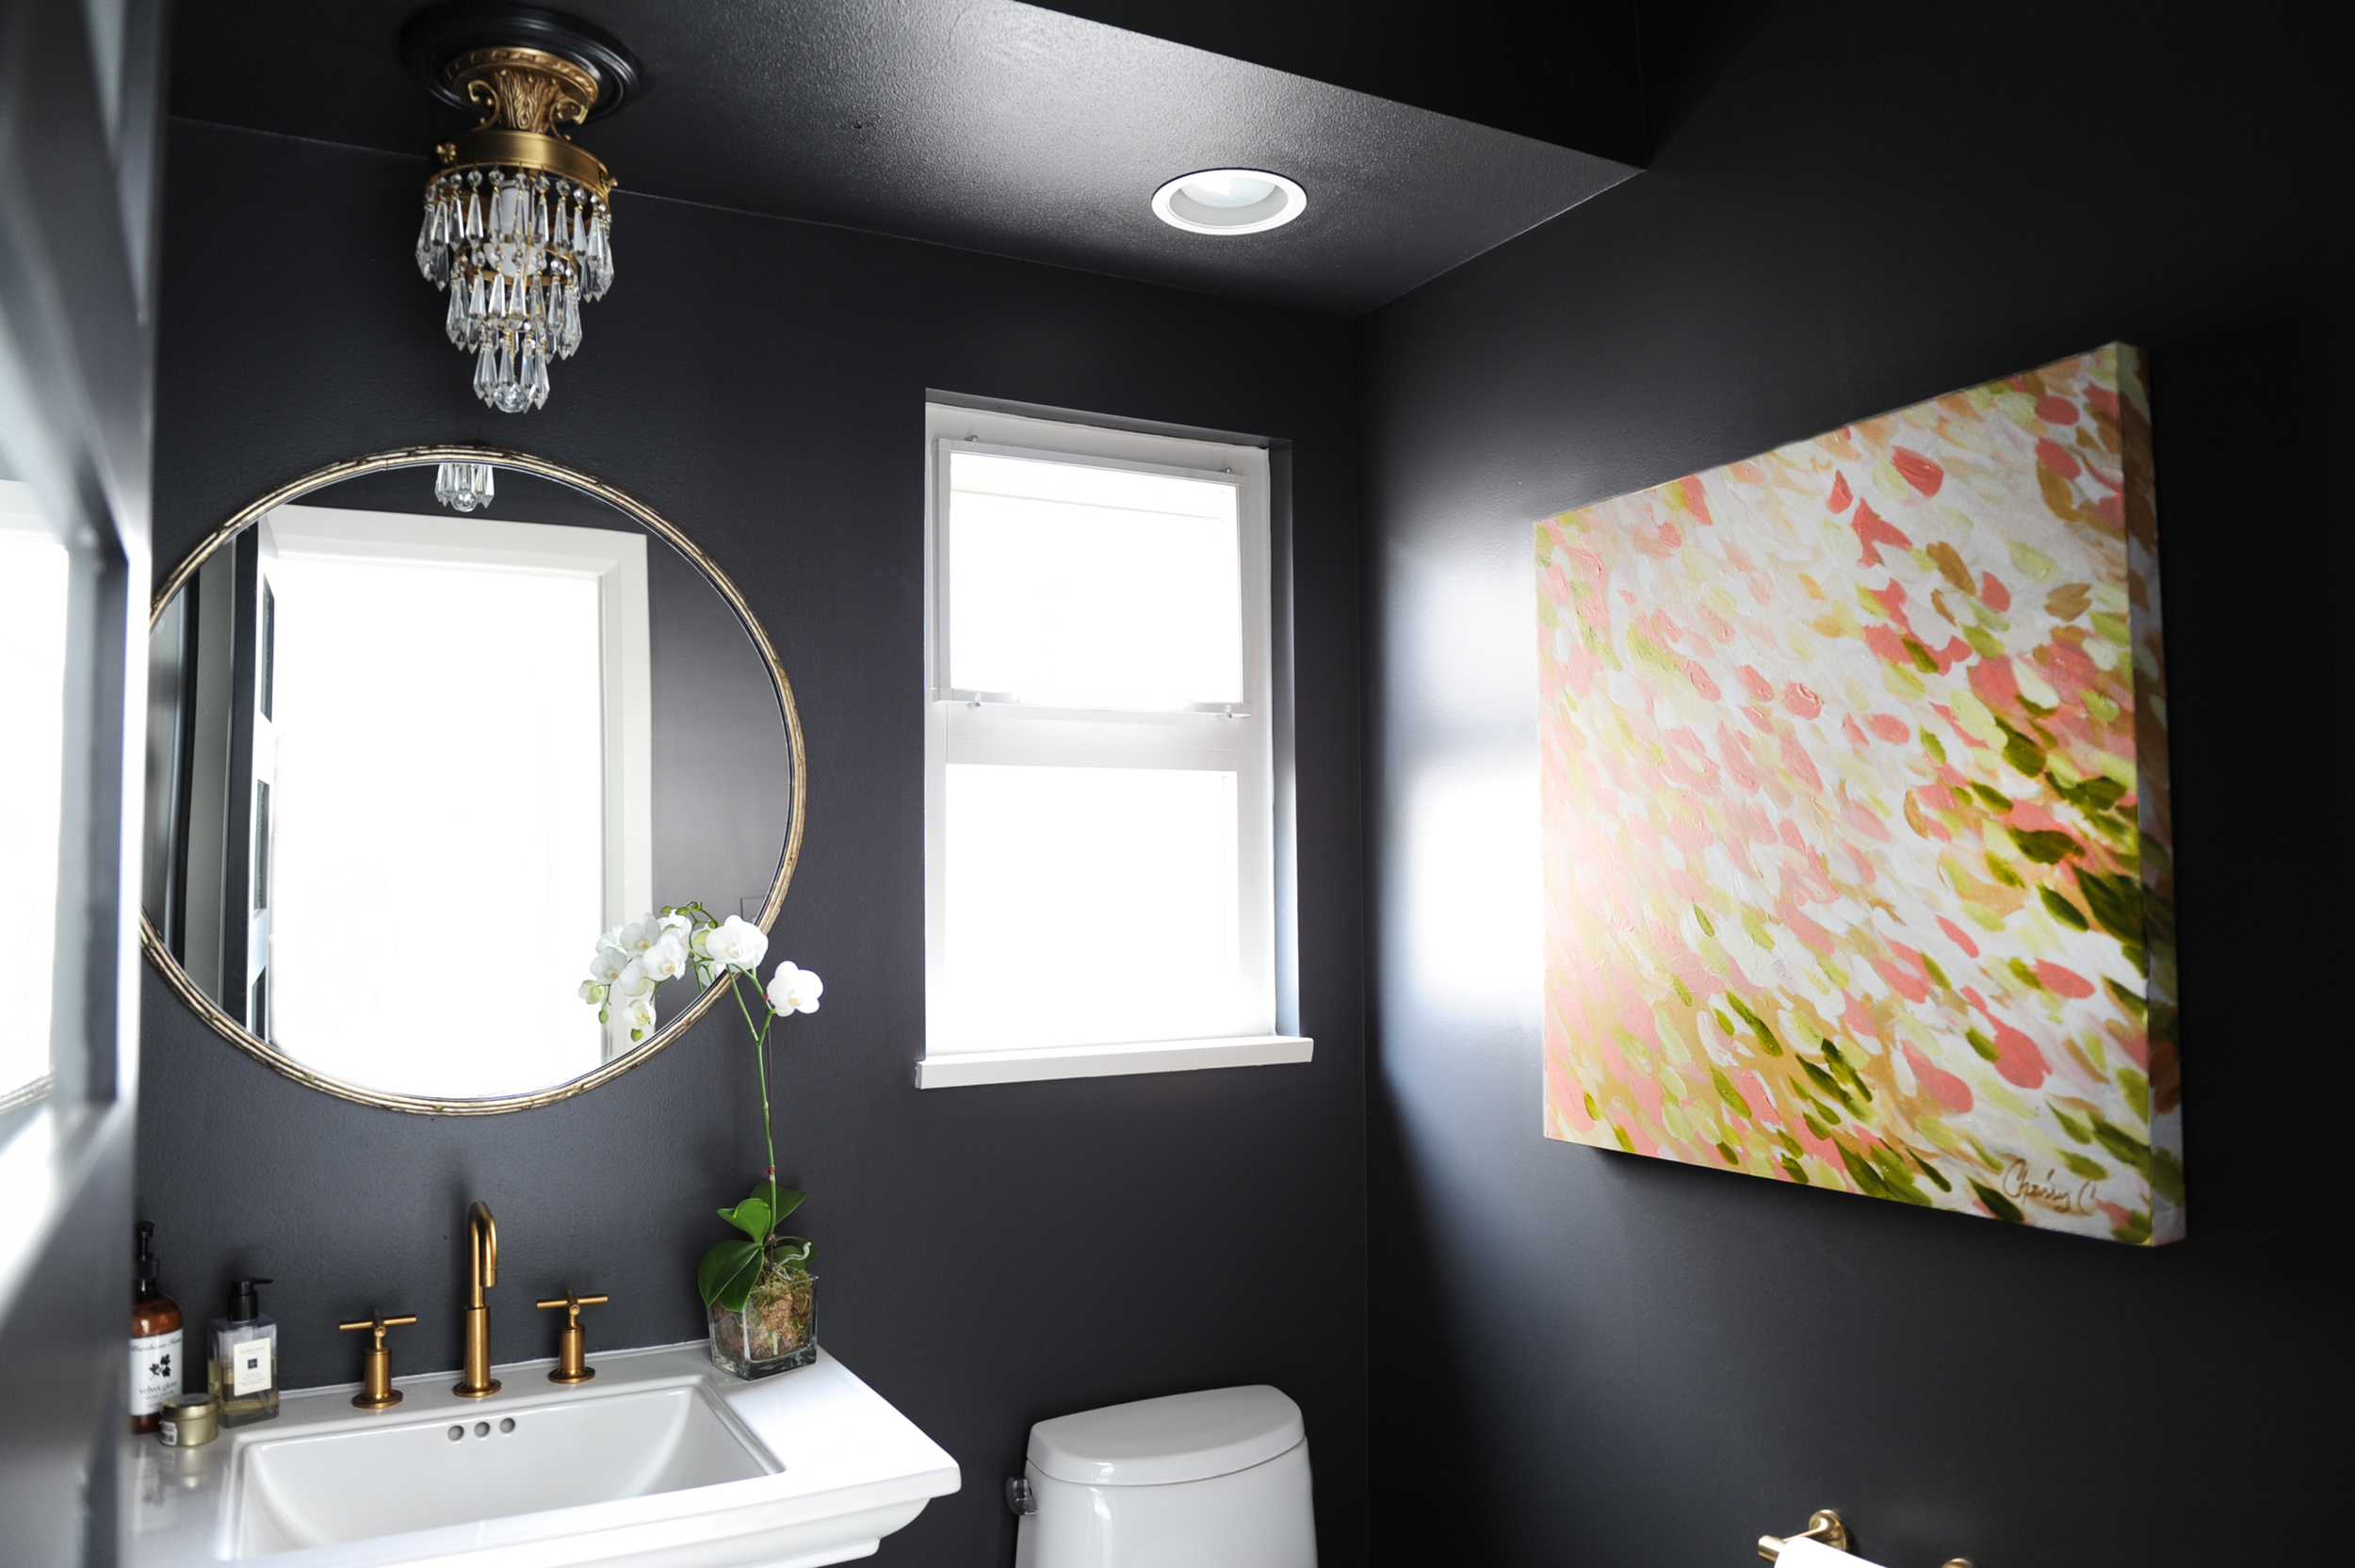 The black walls with the gold fixtures really make this space so timeless and elegant.